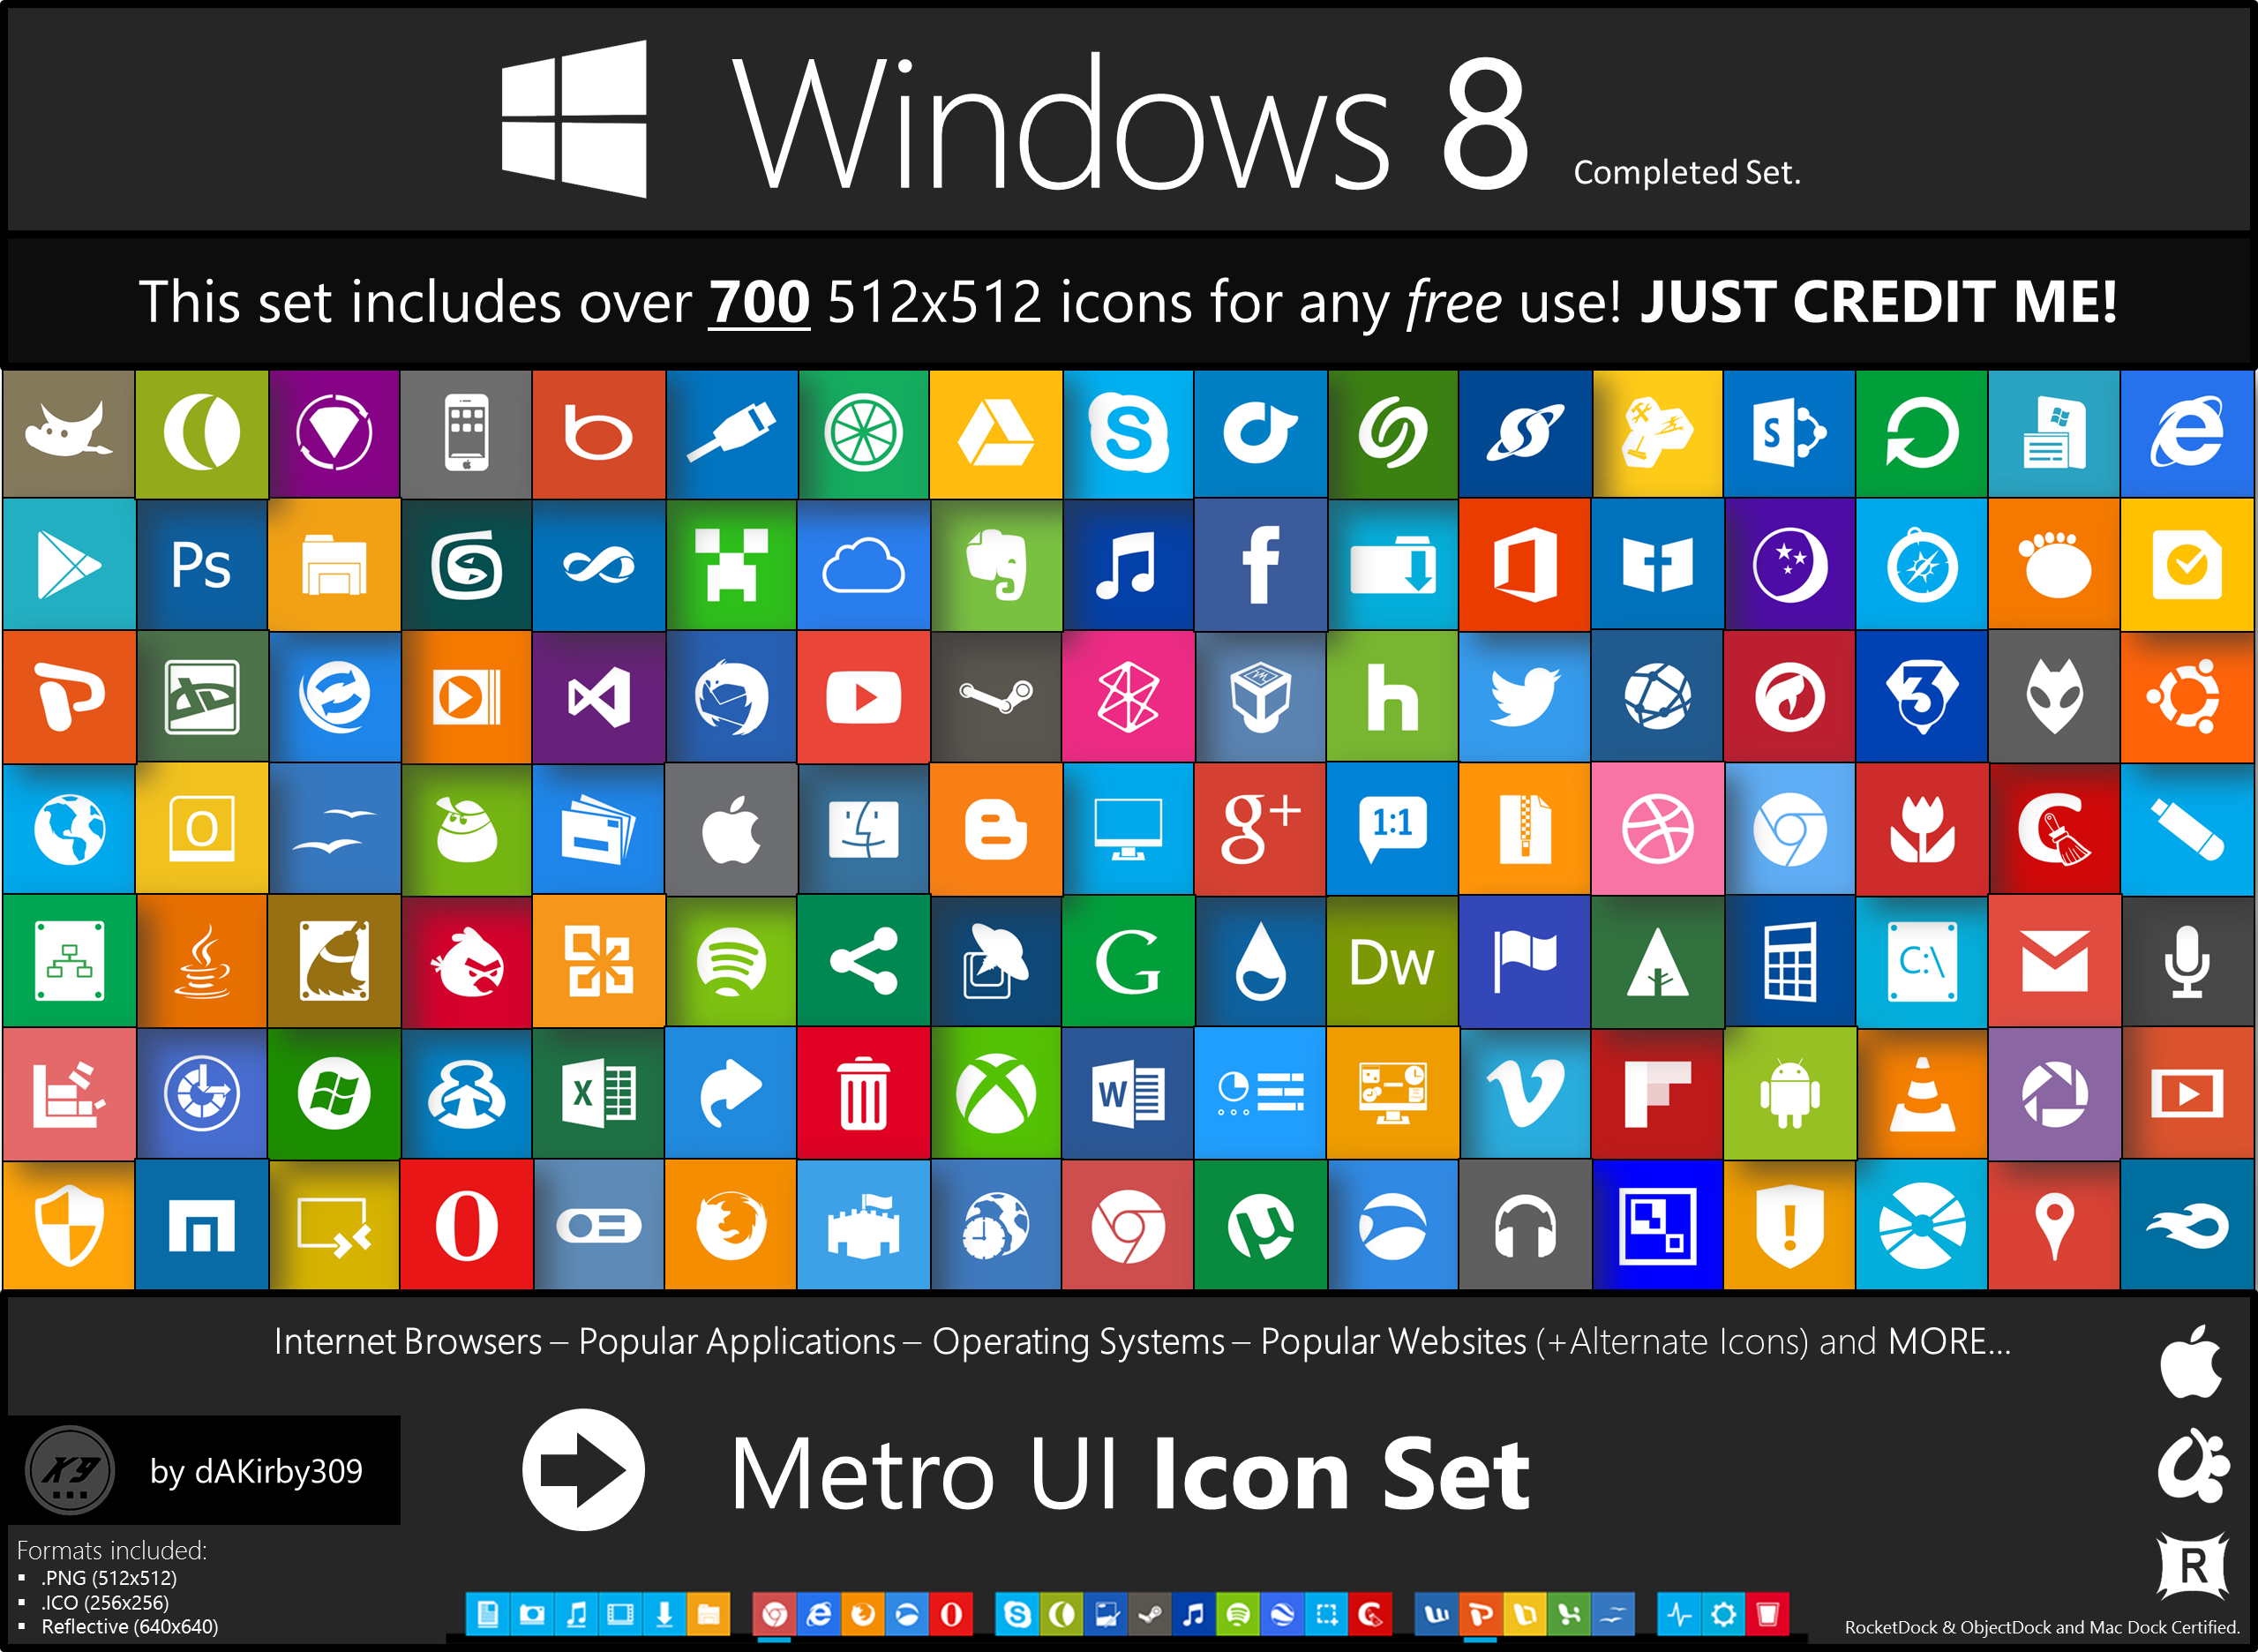 Metro UI Icon Set.